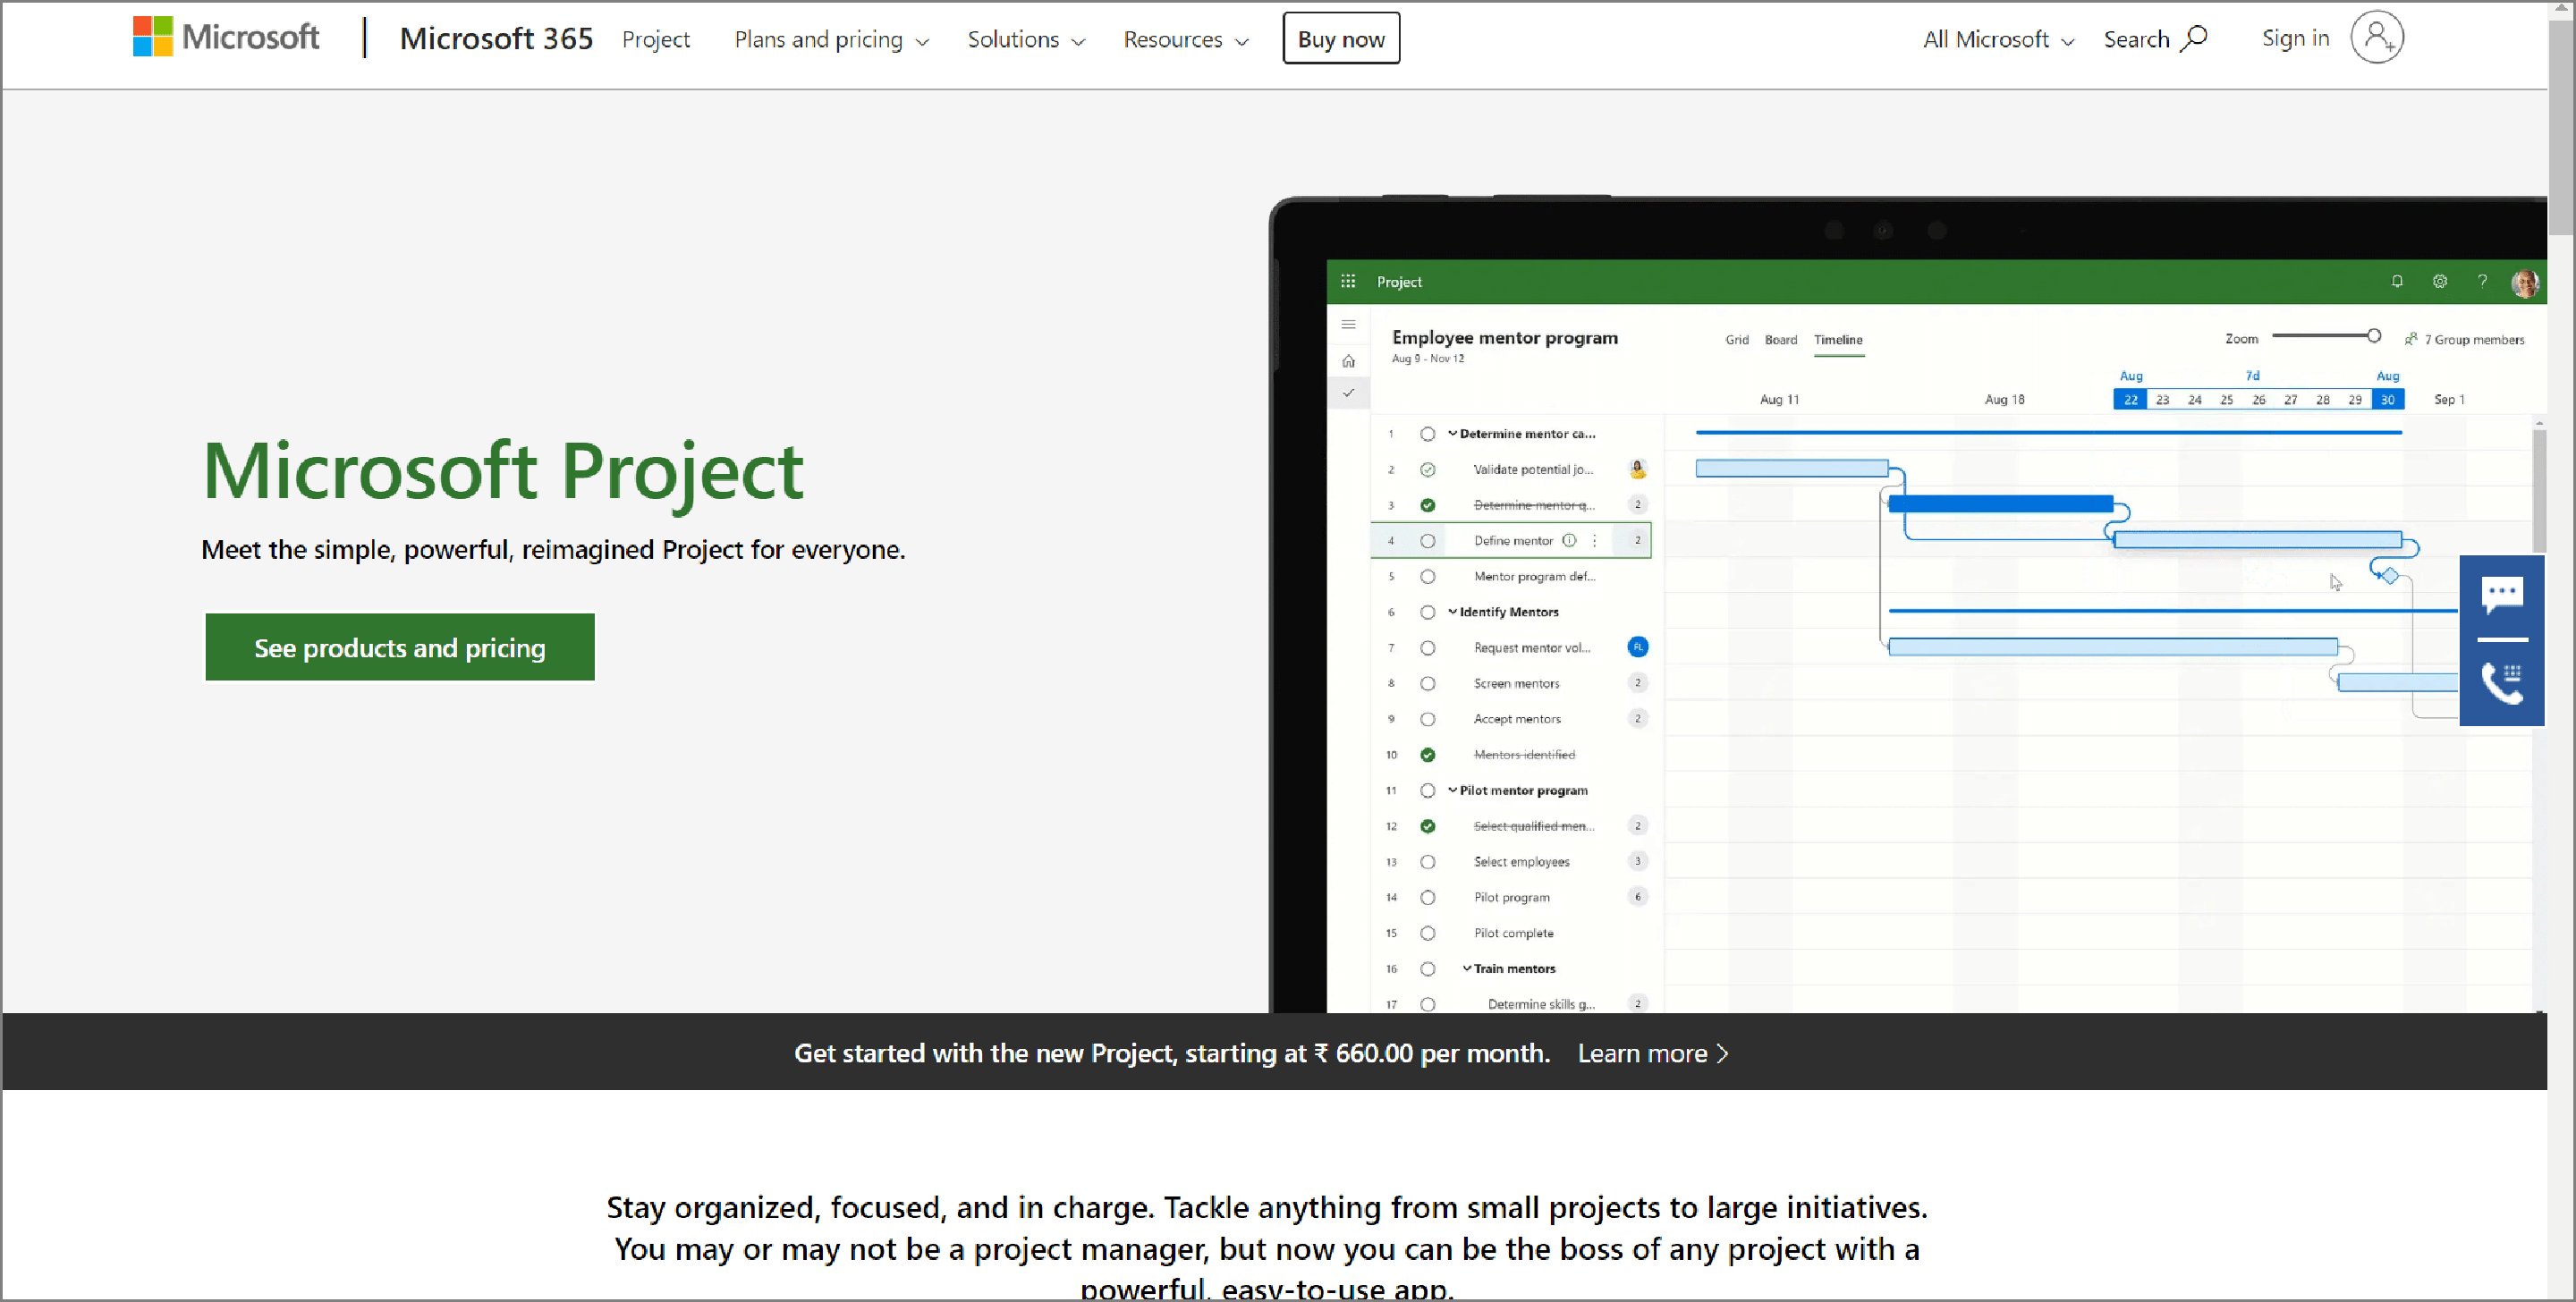 Project Management Software - Microsoft Project.